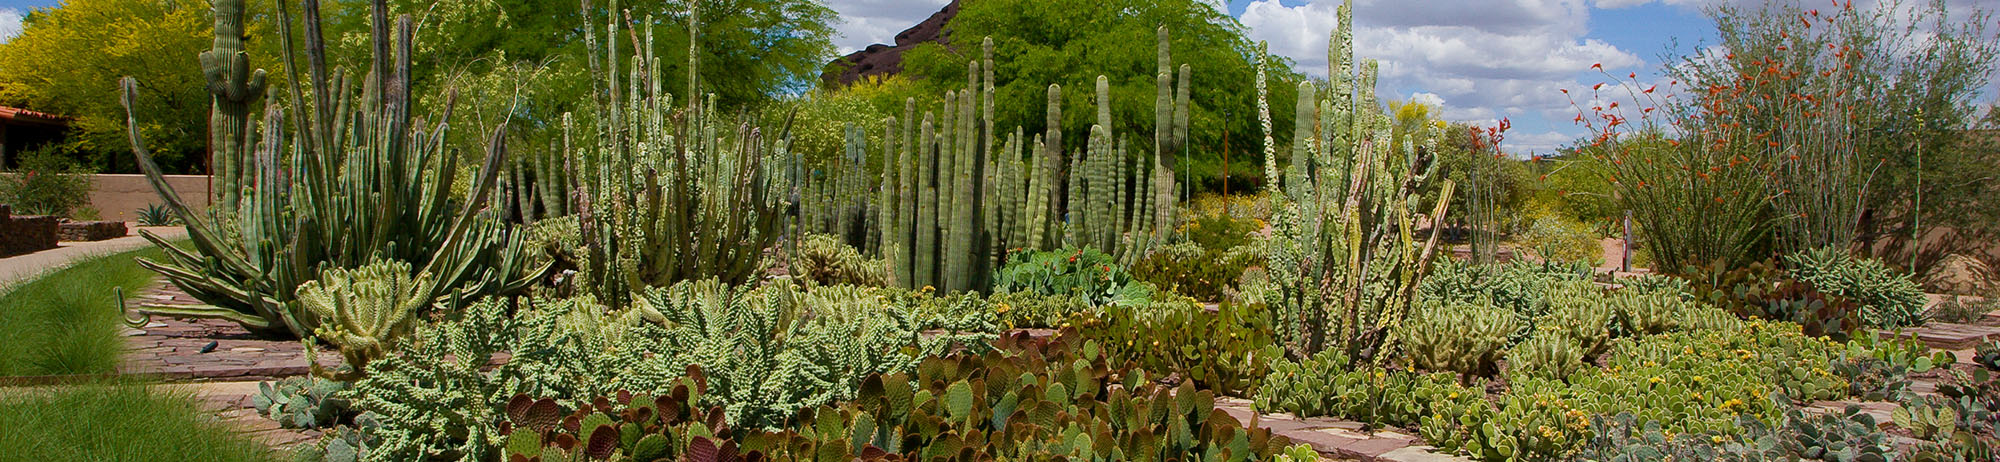 Ottosen Entry Garden at the Desert Botanical Gardens.  Design by Spurlock Poirie r, photograph by Bill Timmerman.